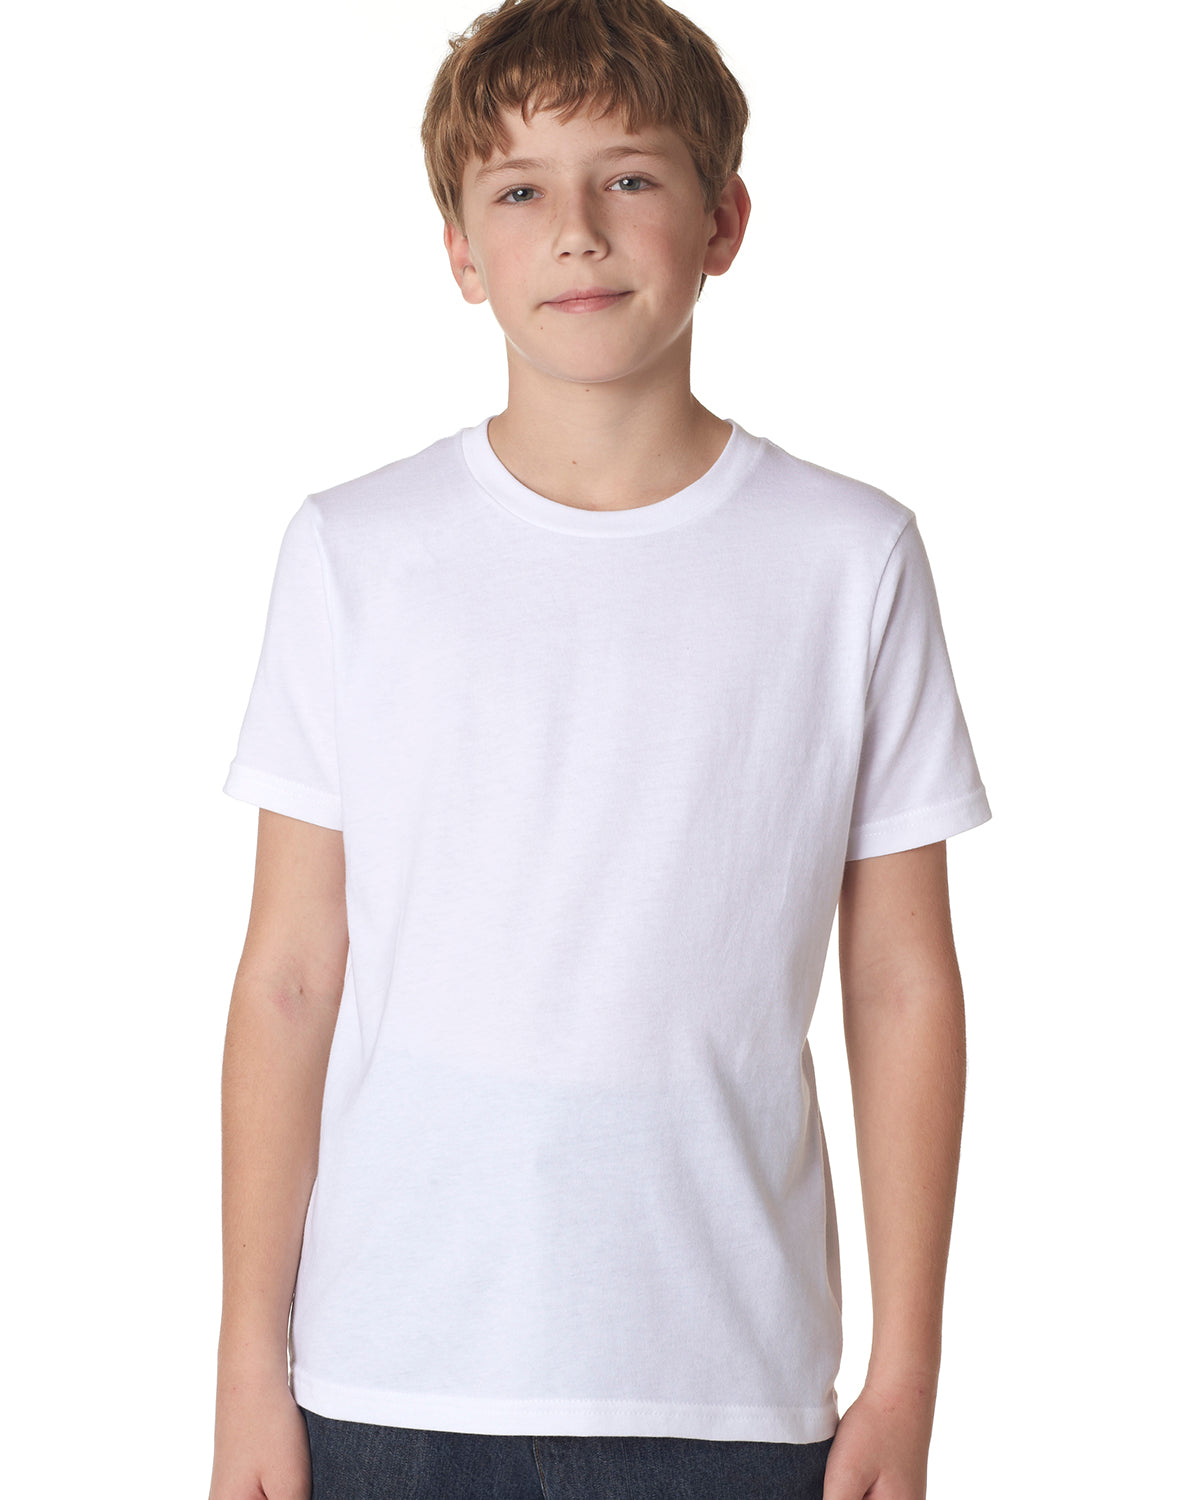 NEXT LEVEL YOUTH BOYS' COTTON CREW